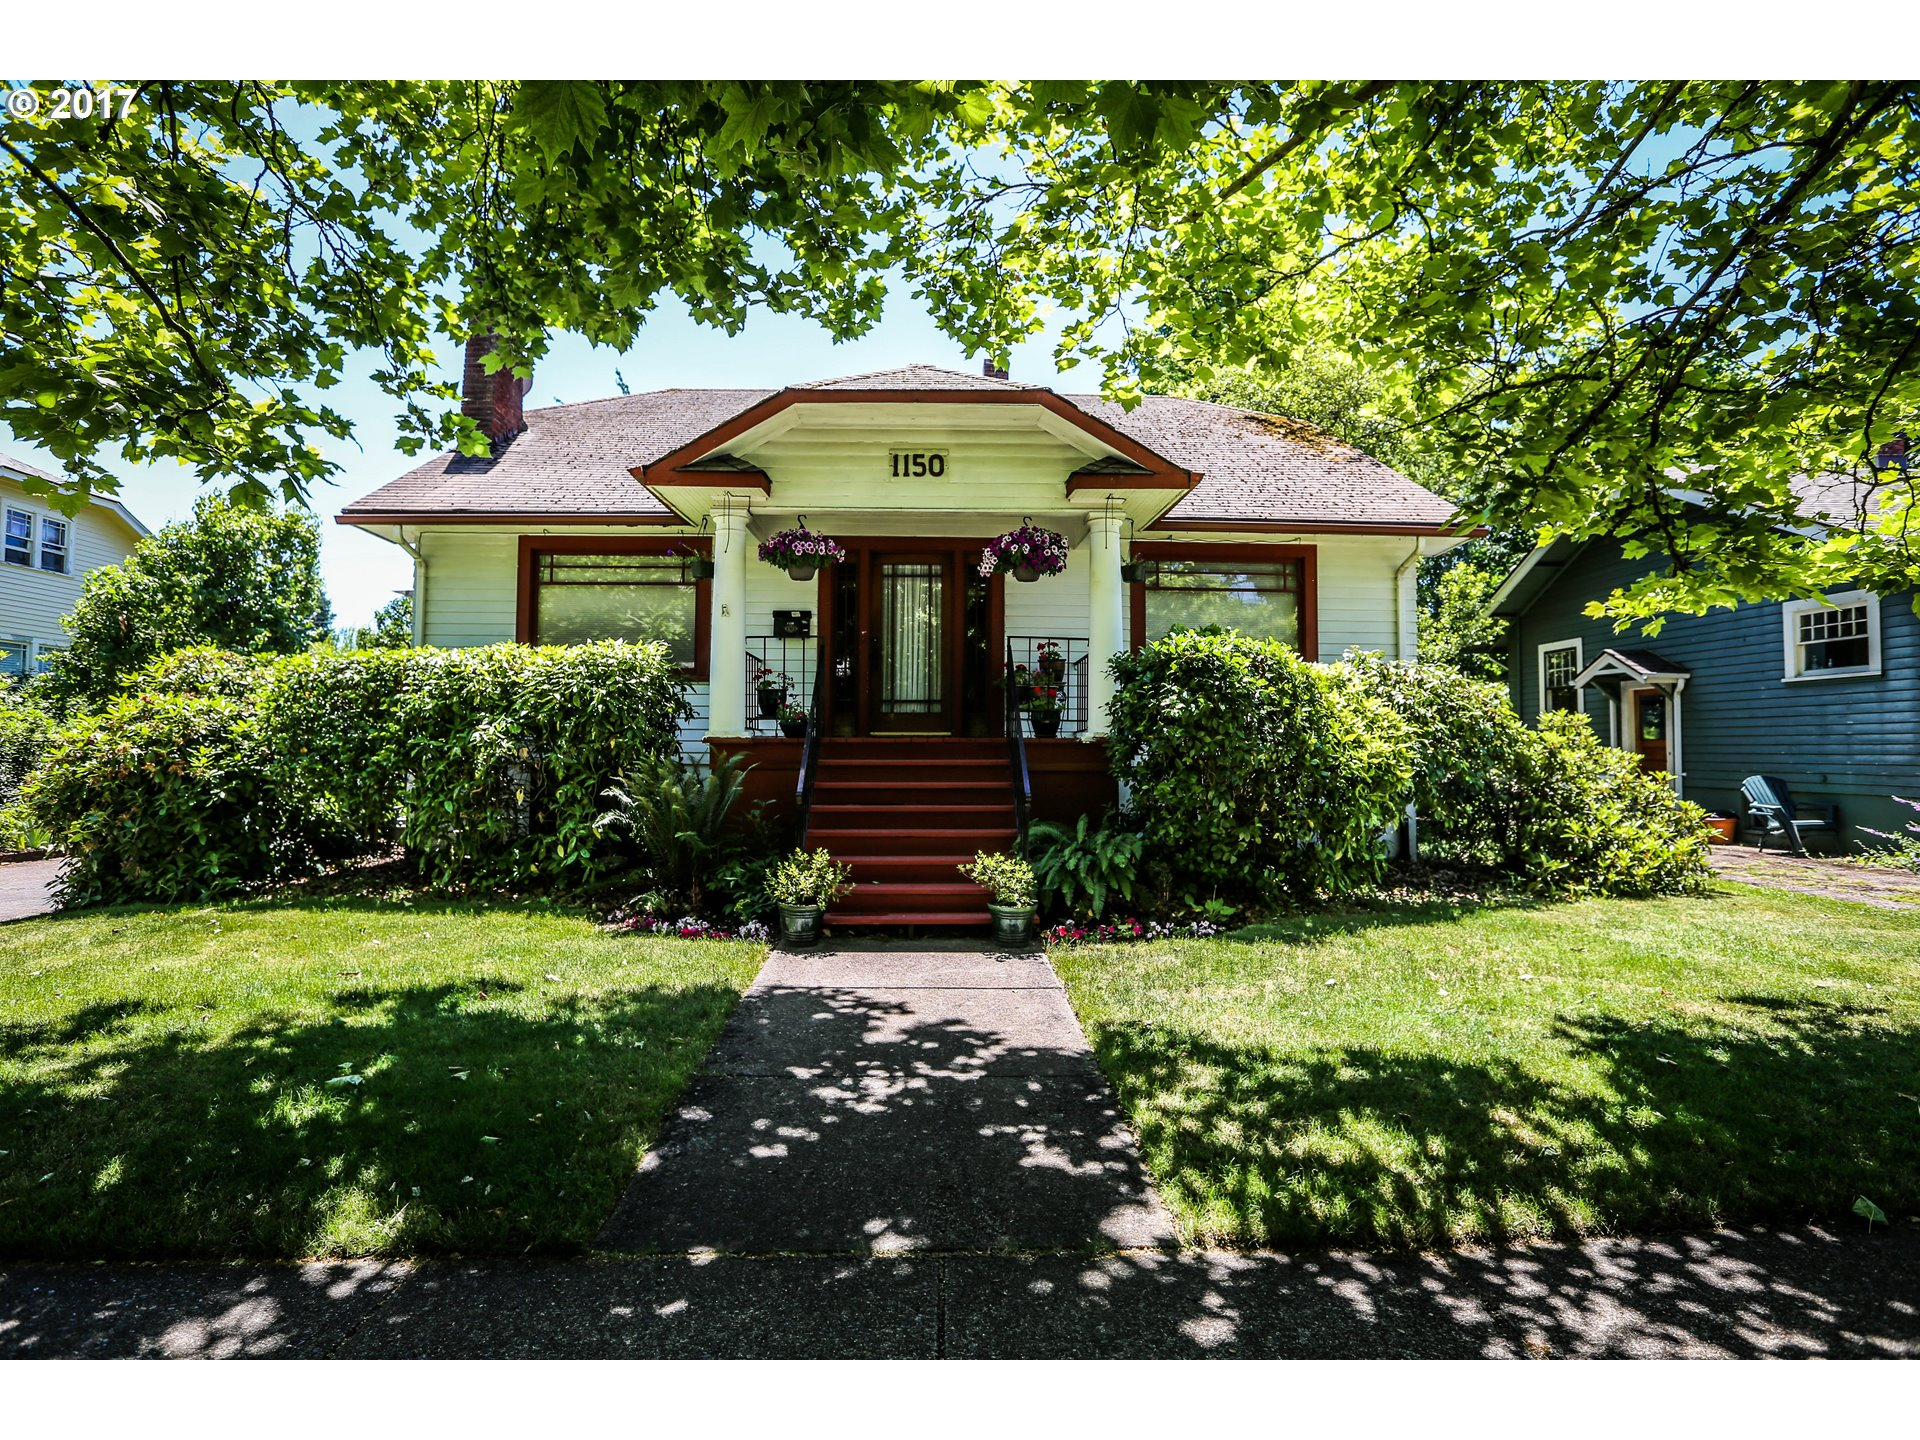 1150 W 11TH AVE, Eugene, OR 97402